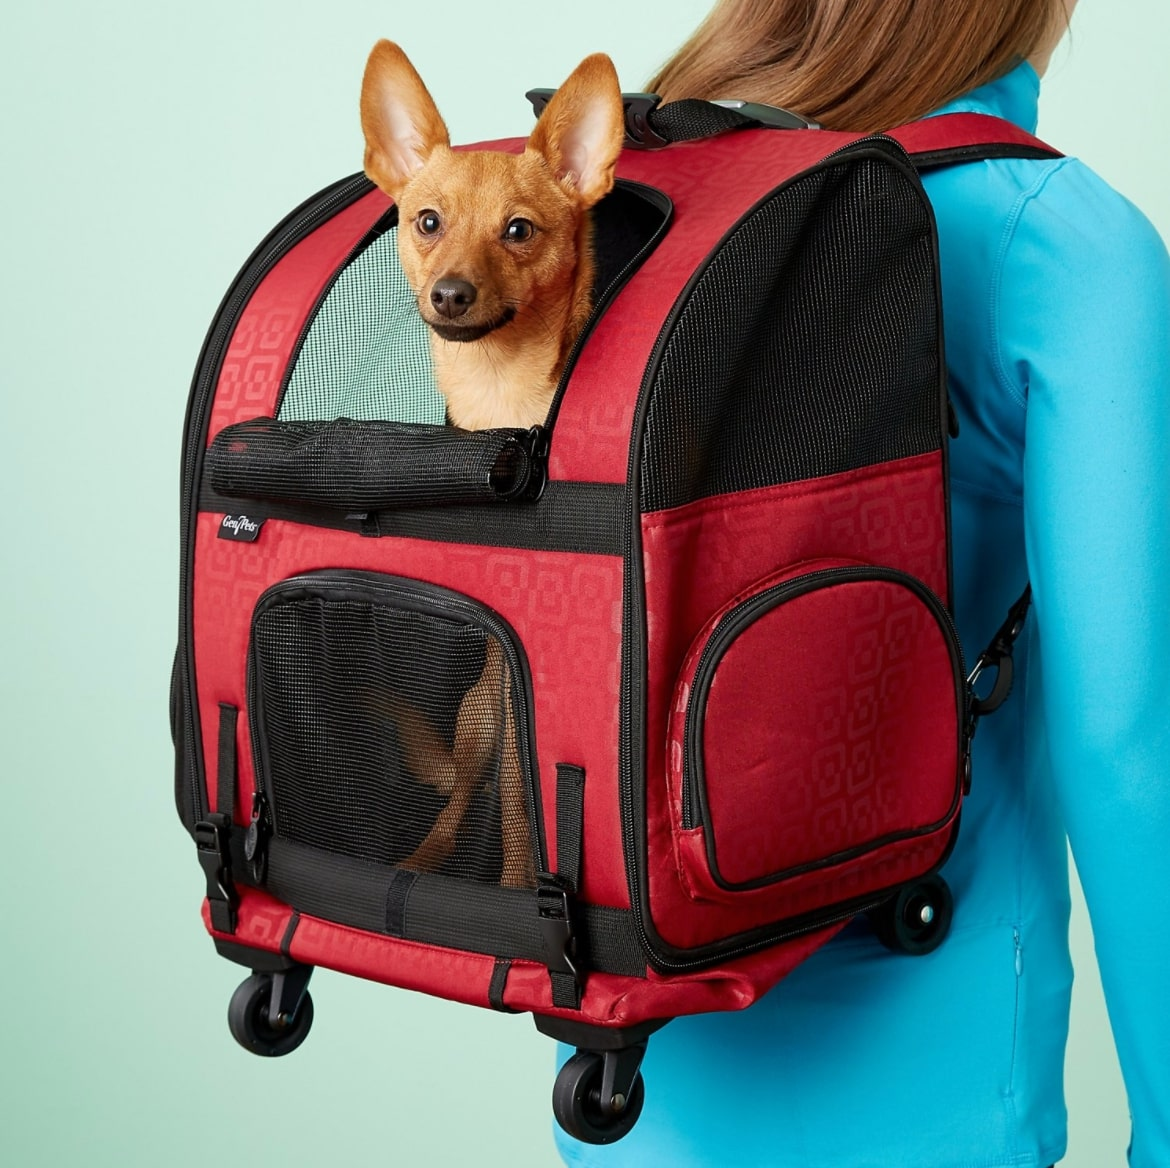 Gen7Pets Roller Pet Carrier